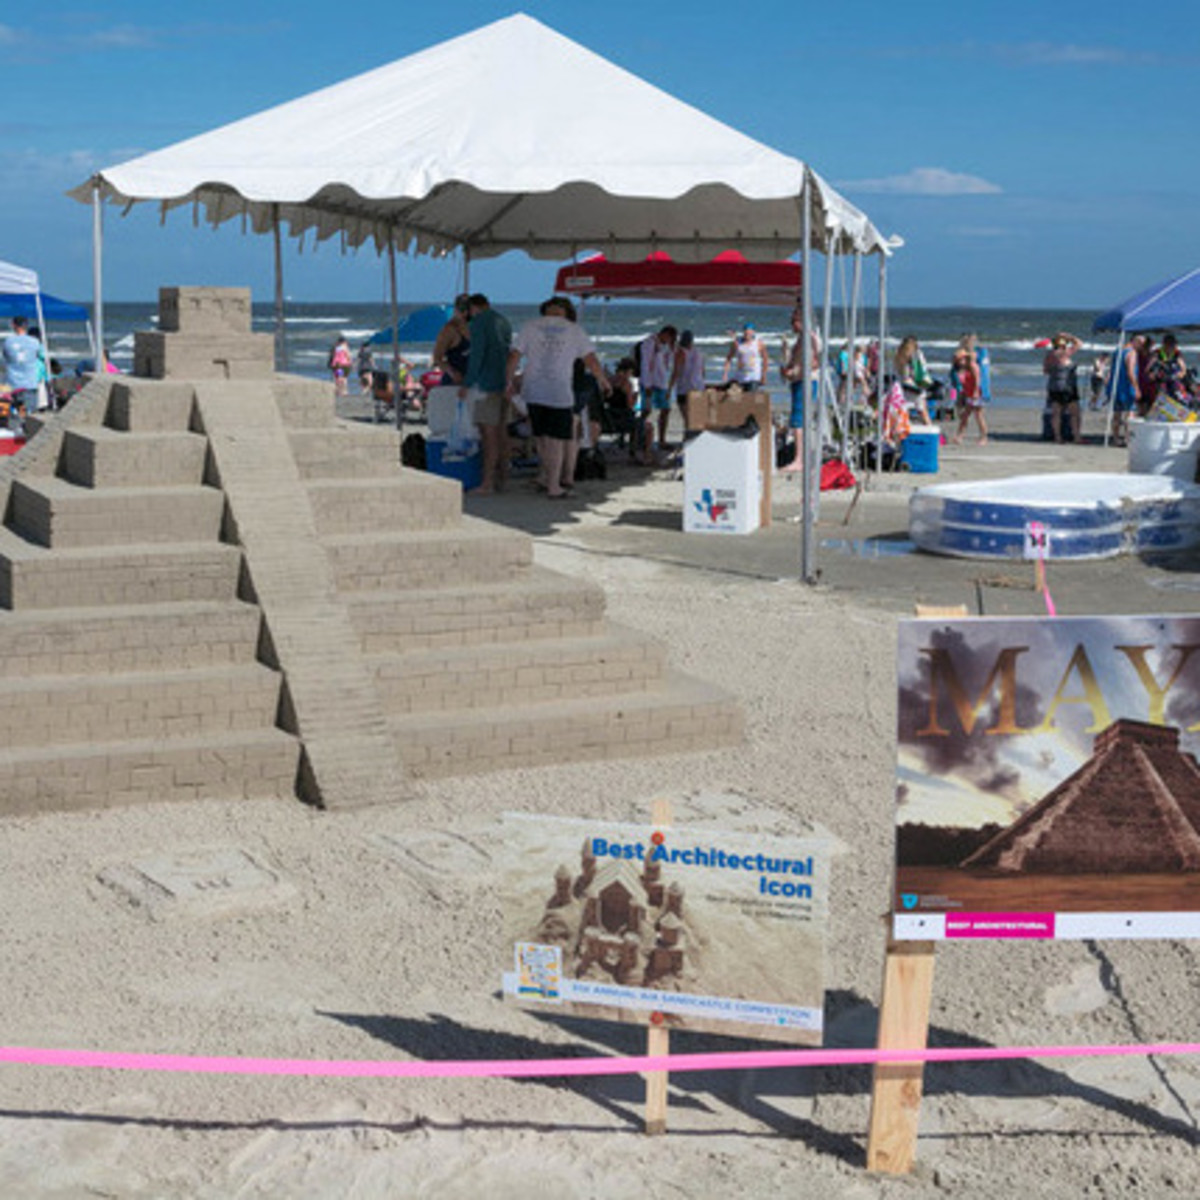 Houston, Houzz series, June 2017, Sandcastle contest, Mayan Pyramid